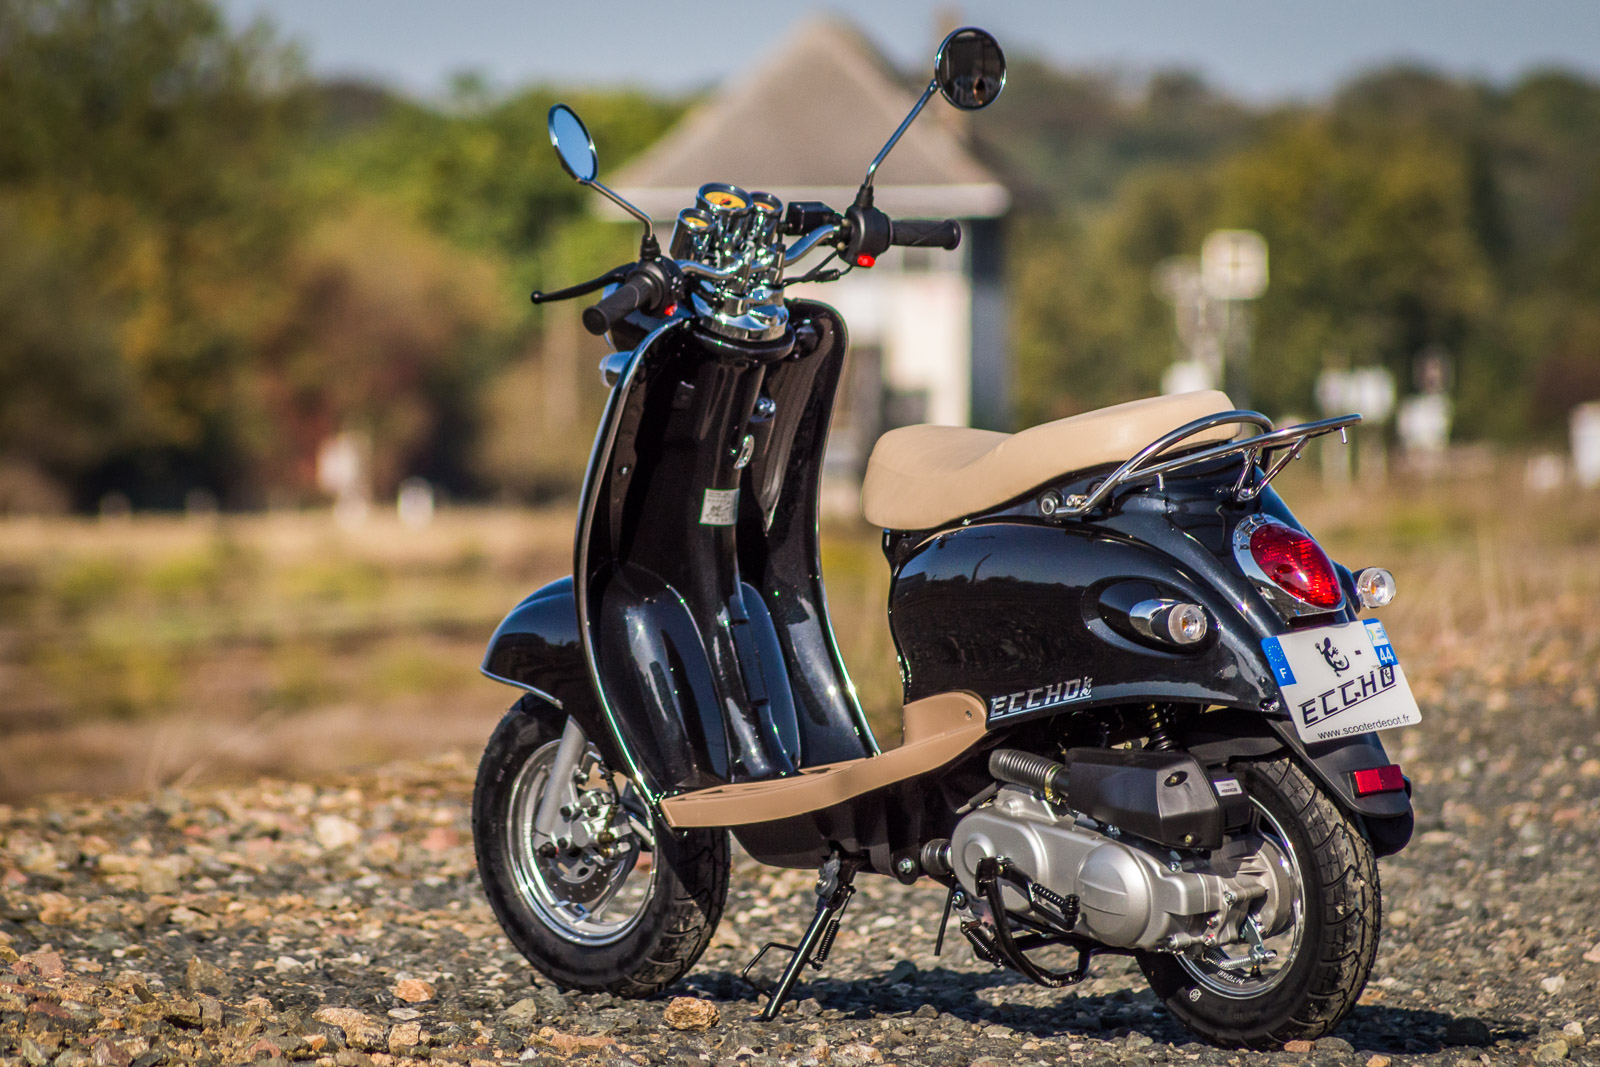 SCOOTER-50-ECCHO-RETRO-50-15